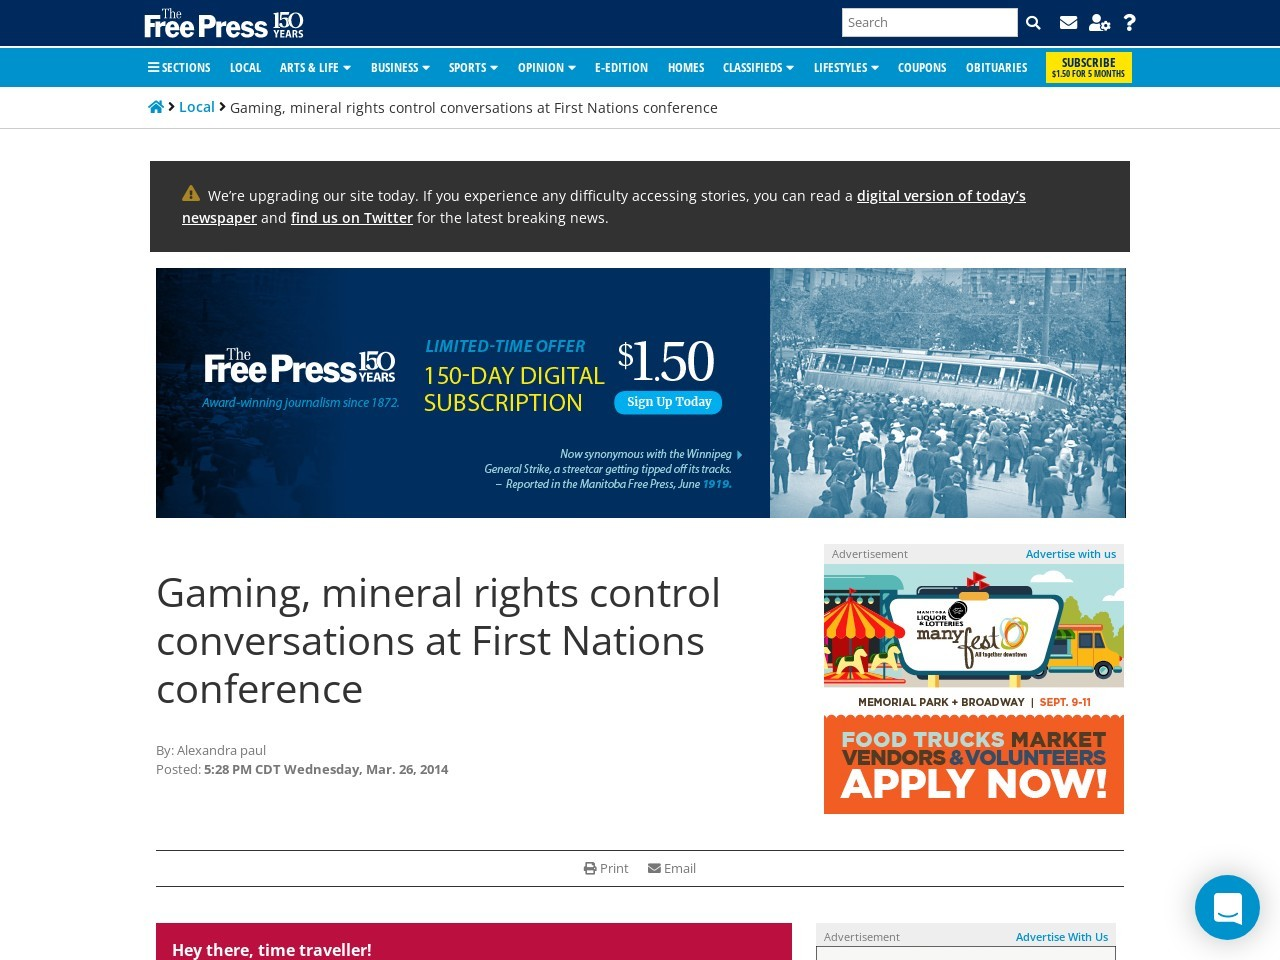 Gaming, mineral rights control conversations at First Nations conference